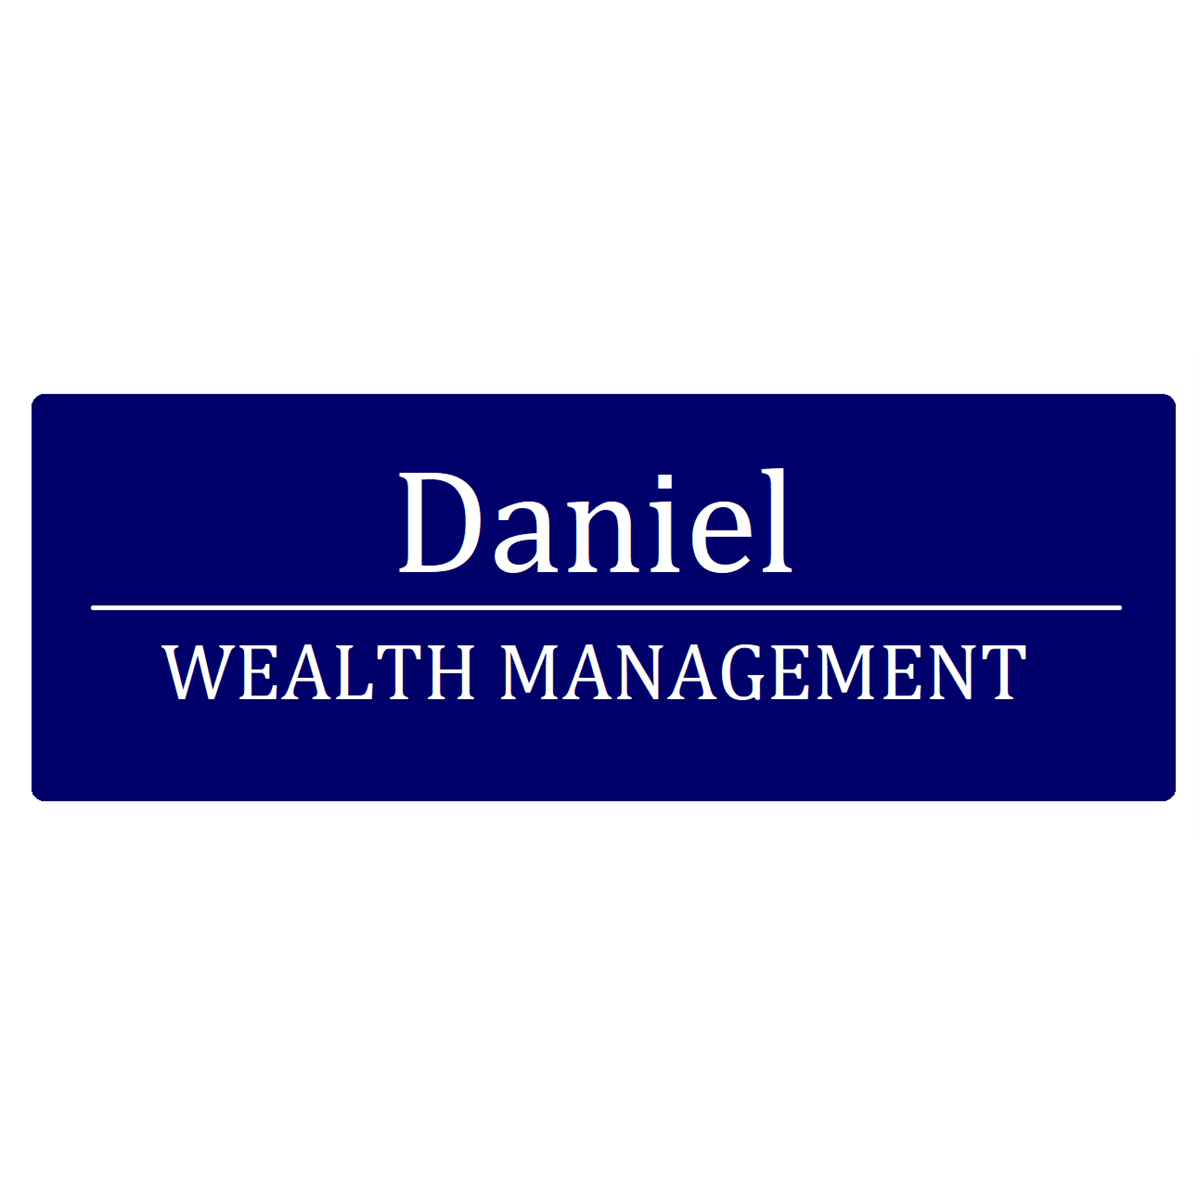 Daniel Wealth Management